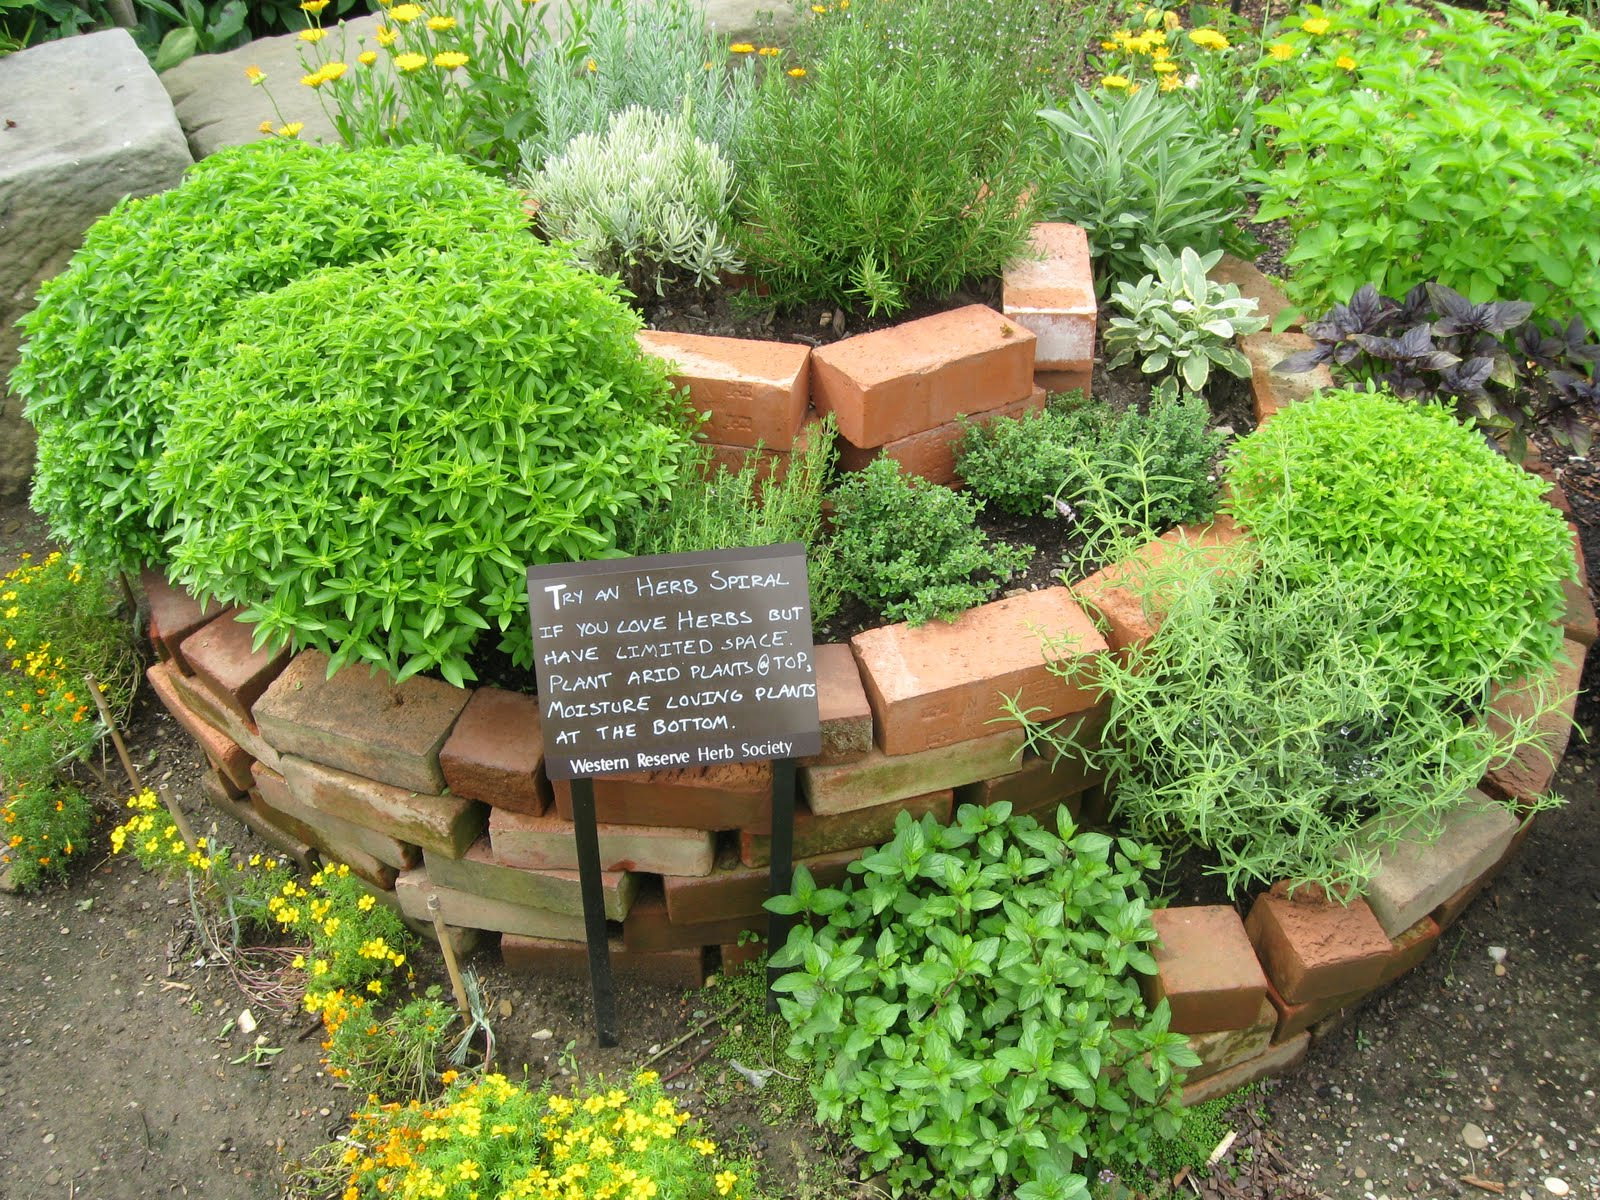 Spiral Herb Garden Design Photograph this herb garden